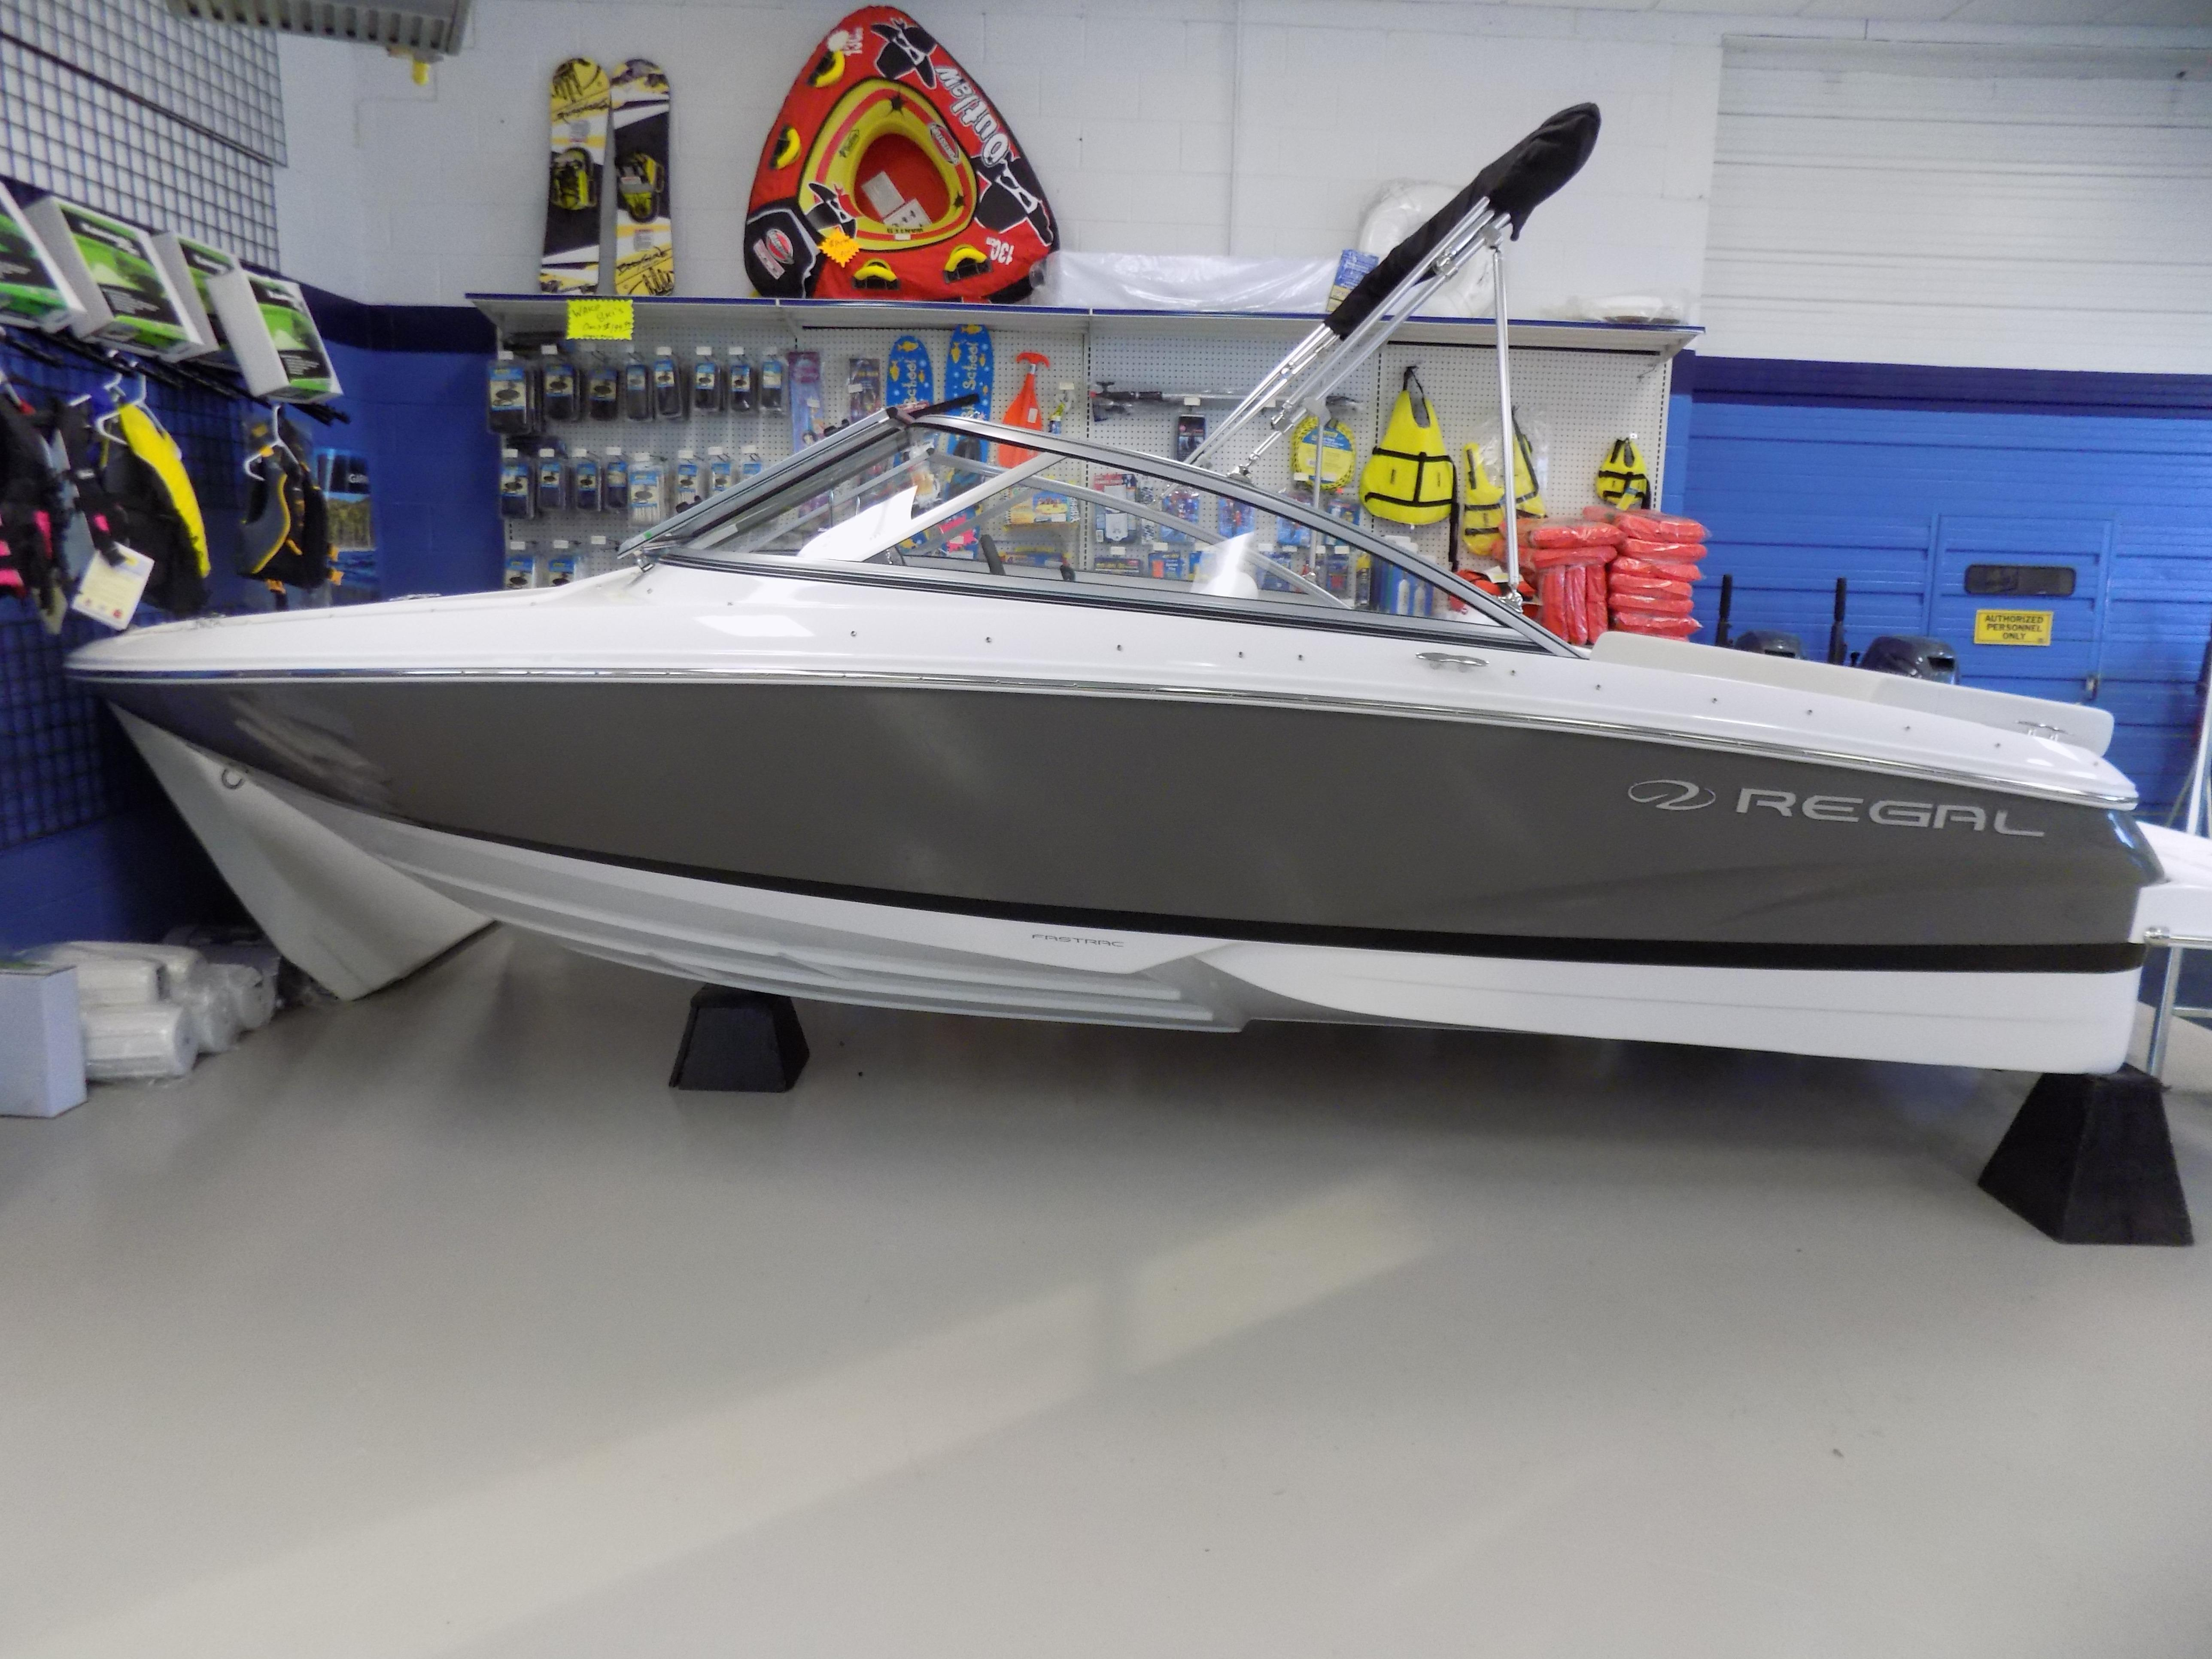 2018 Regal 1900 Es Bowrider Power Boat For Sale Www